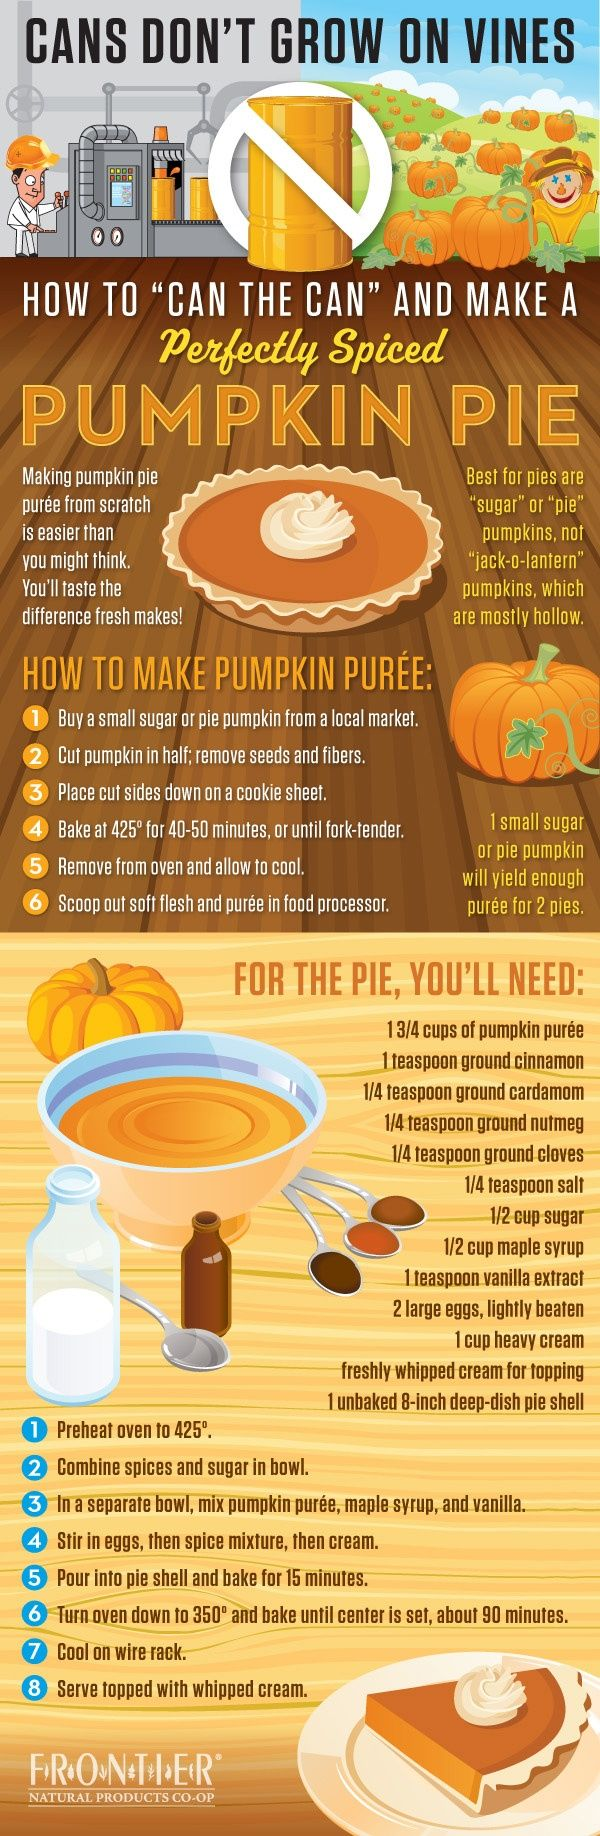 How to make pumpkin puree and a perfect pumpkin pie totally from scratch!